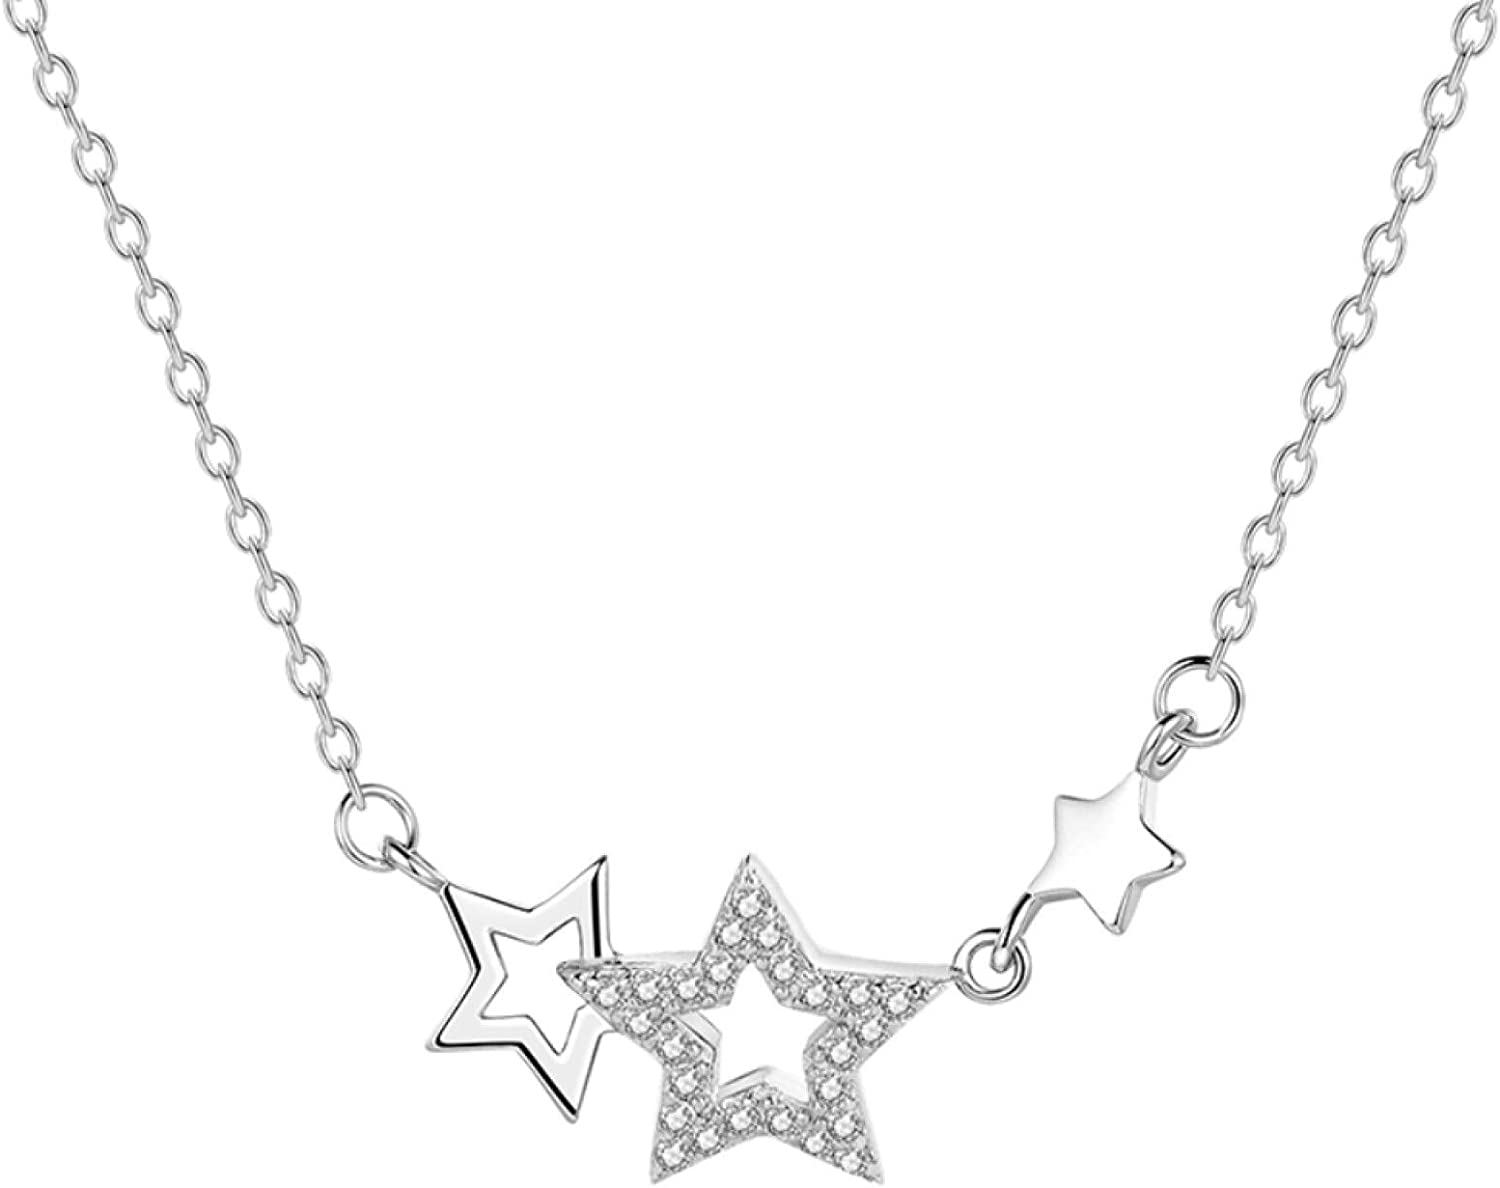 Necklace Women Rhinestone Five 70% OFF Outlet Pointed Super special price Pendant Star Clavicle Ch